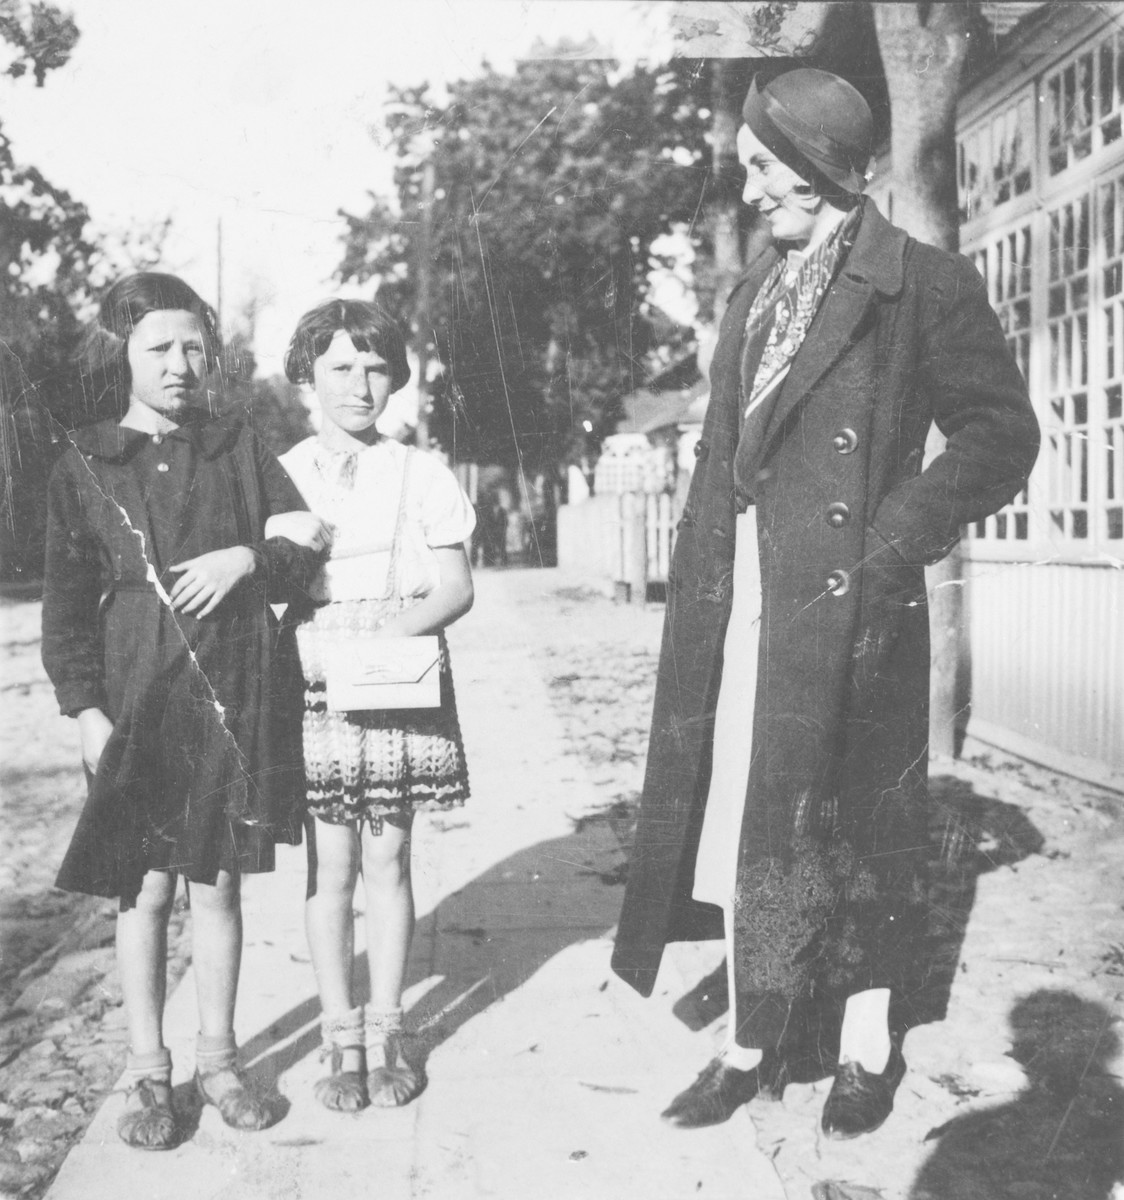 Niusia and Rywa Gordon pose with their aunt on a street in Swieciany.